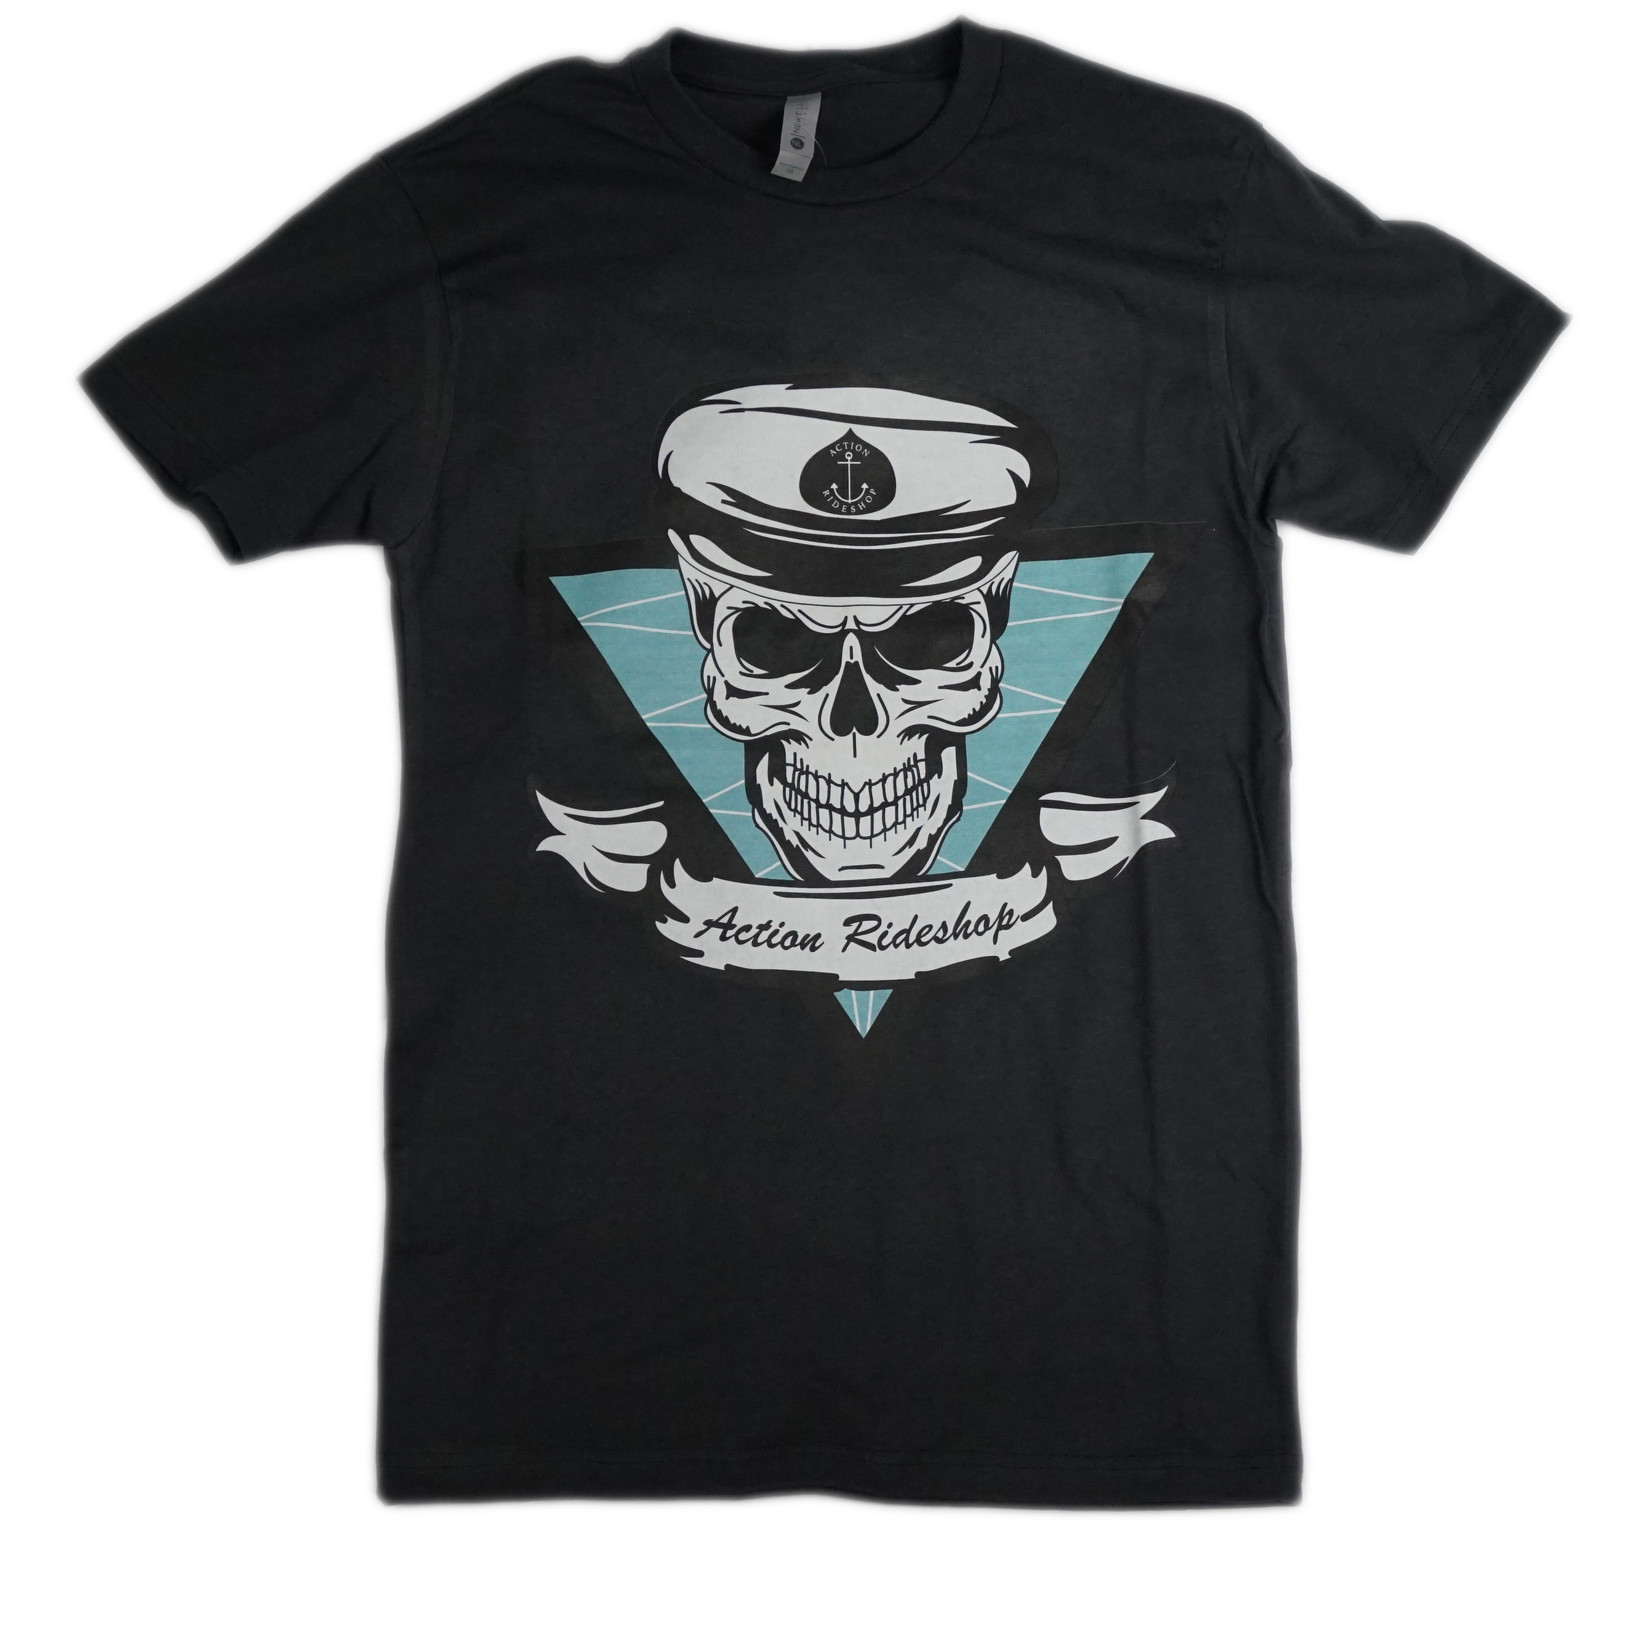 Action Rideshop Captain Booty S/S